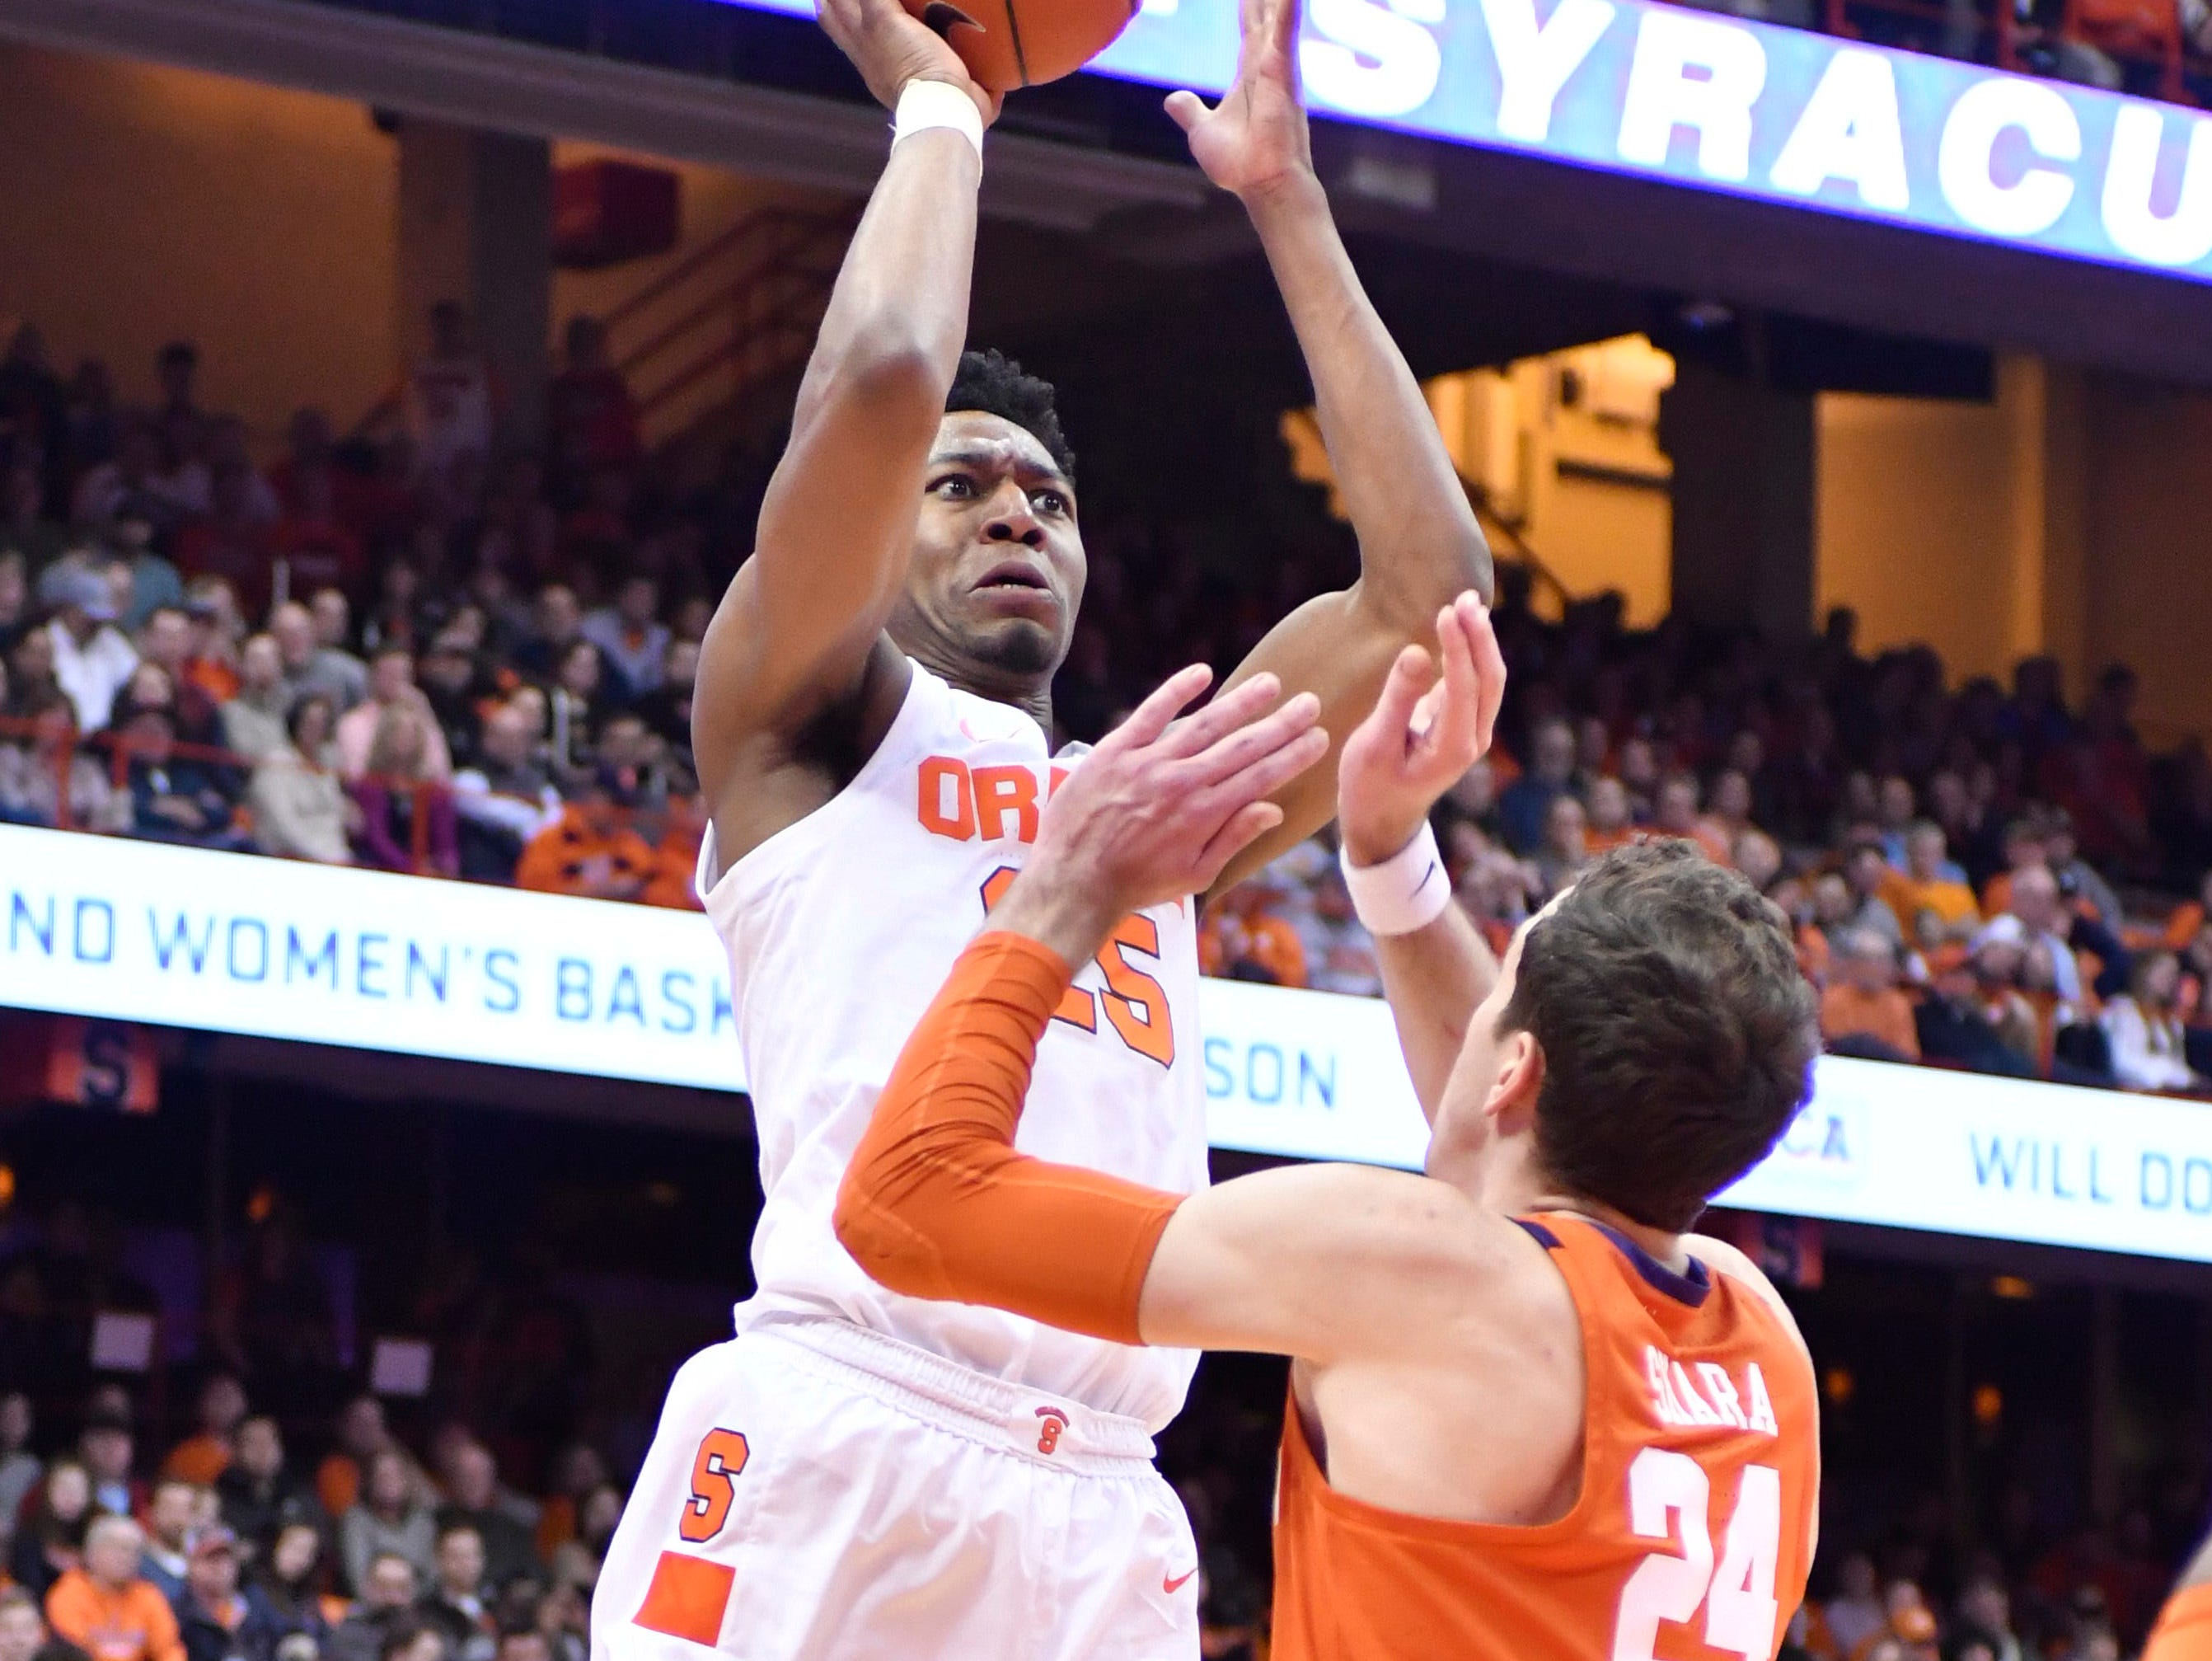 Jan 9, 2019; Syracuse, NY, USA; Syracuse Orange guard Tyus Battle (25) shoots a jump shot against Clemson Tigers forward David Skara (24) in the second half at the Carrier Dome.